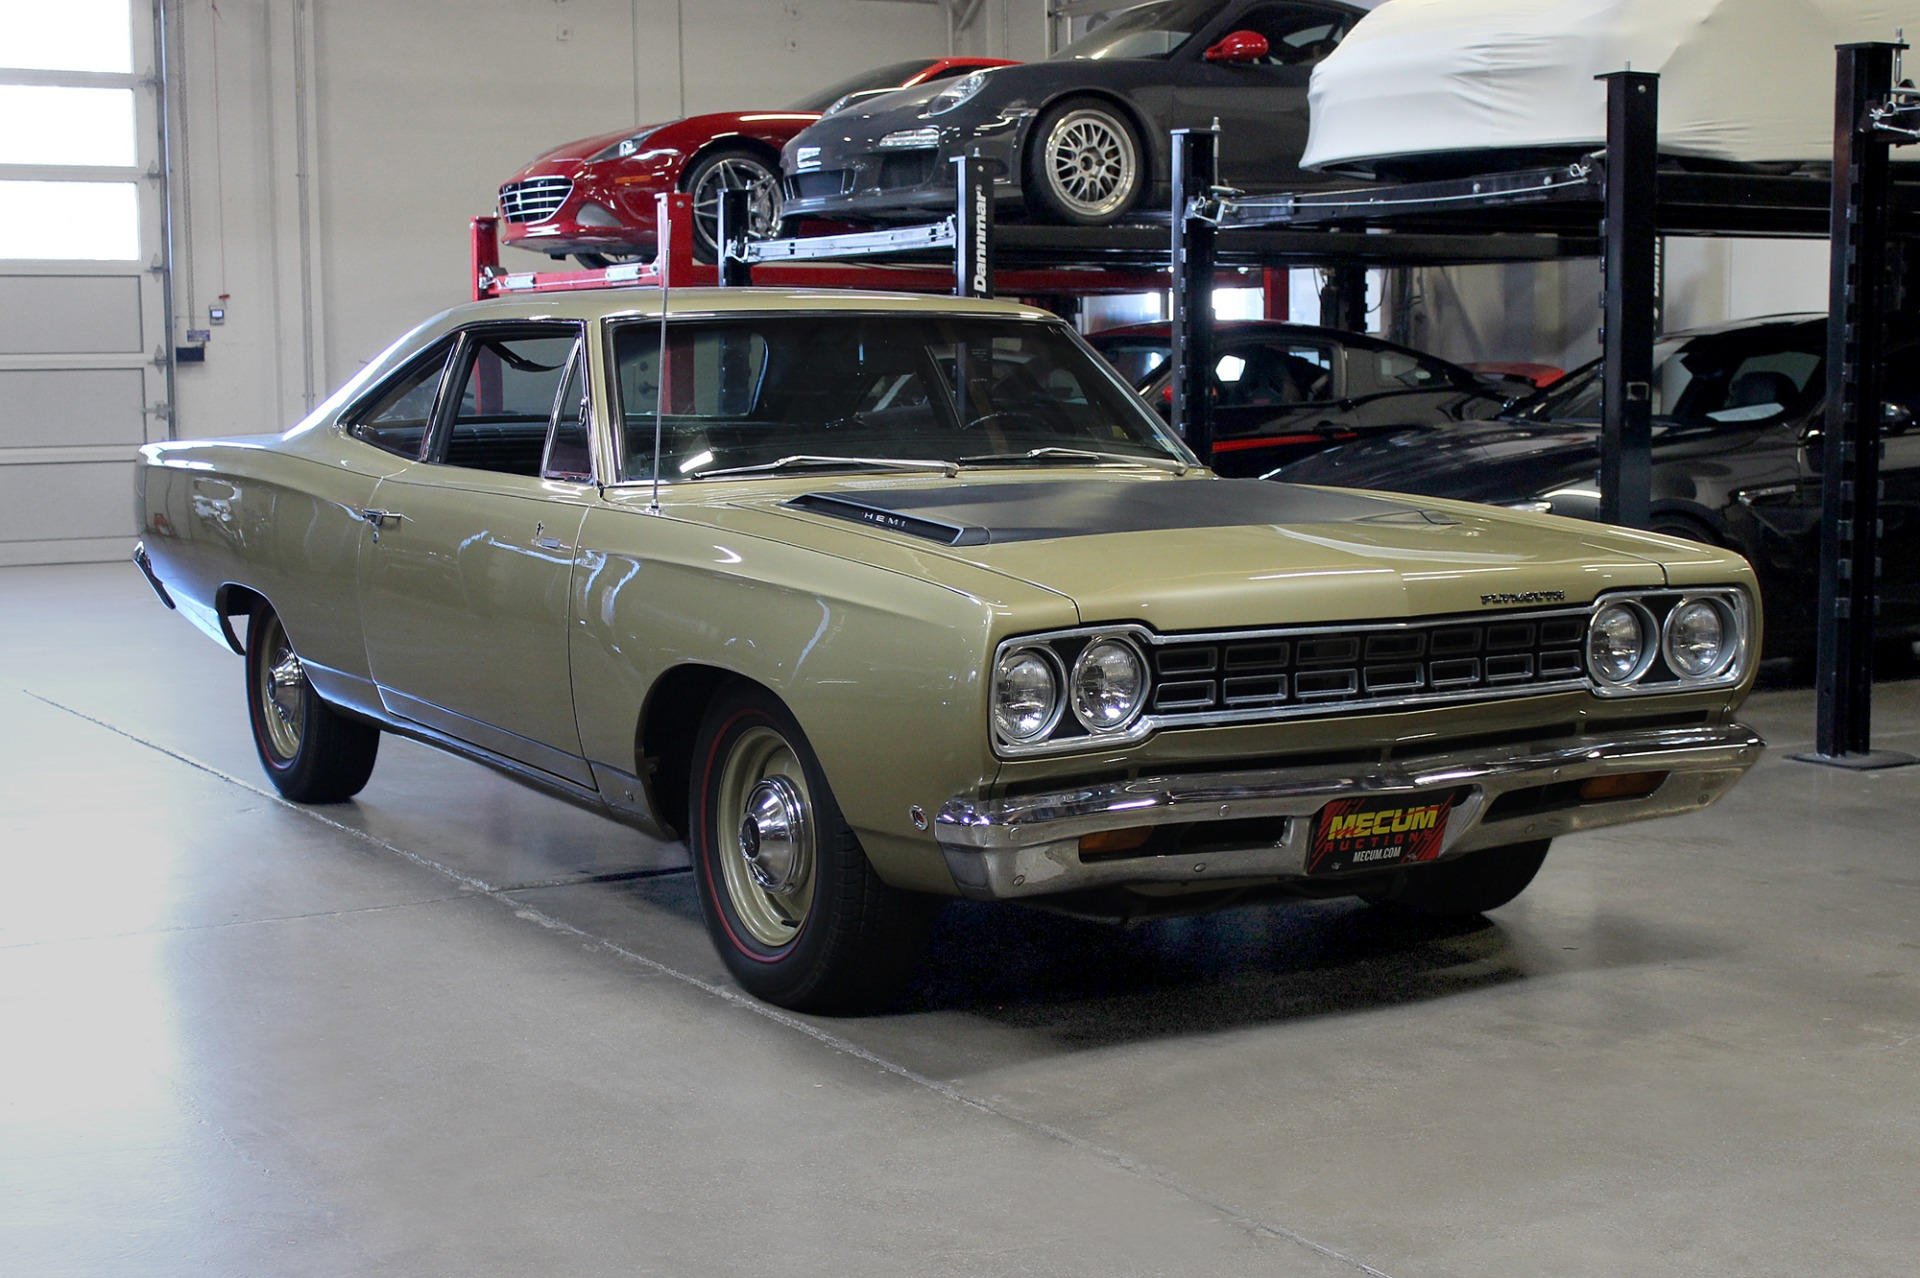 Used 1968 Plymouth Roadrunner 426 Hemi for sale $79,995 at San Francisco Sports Cars in San Carlos CA 94070 1